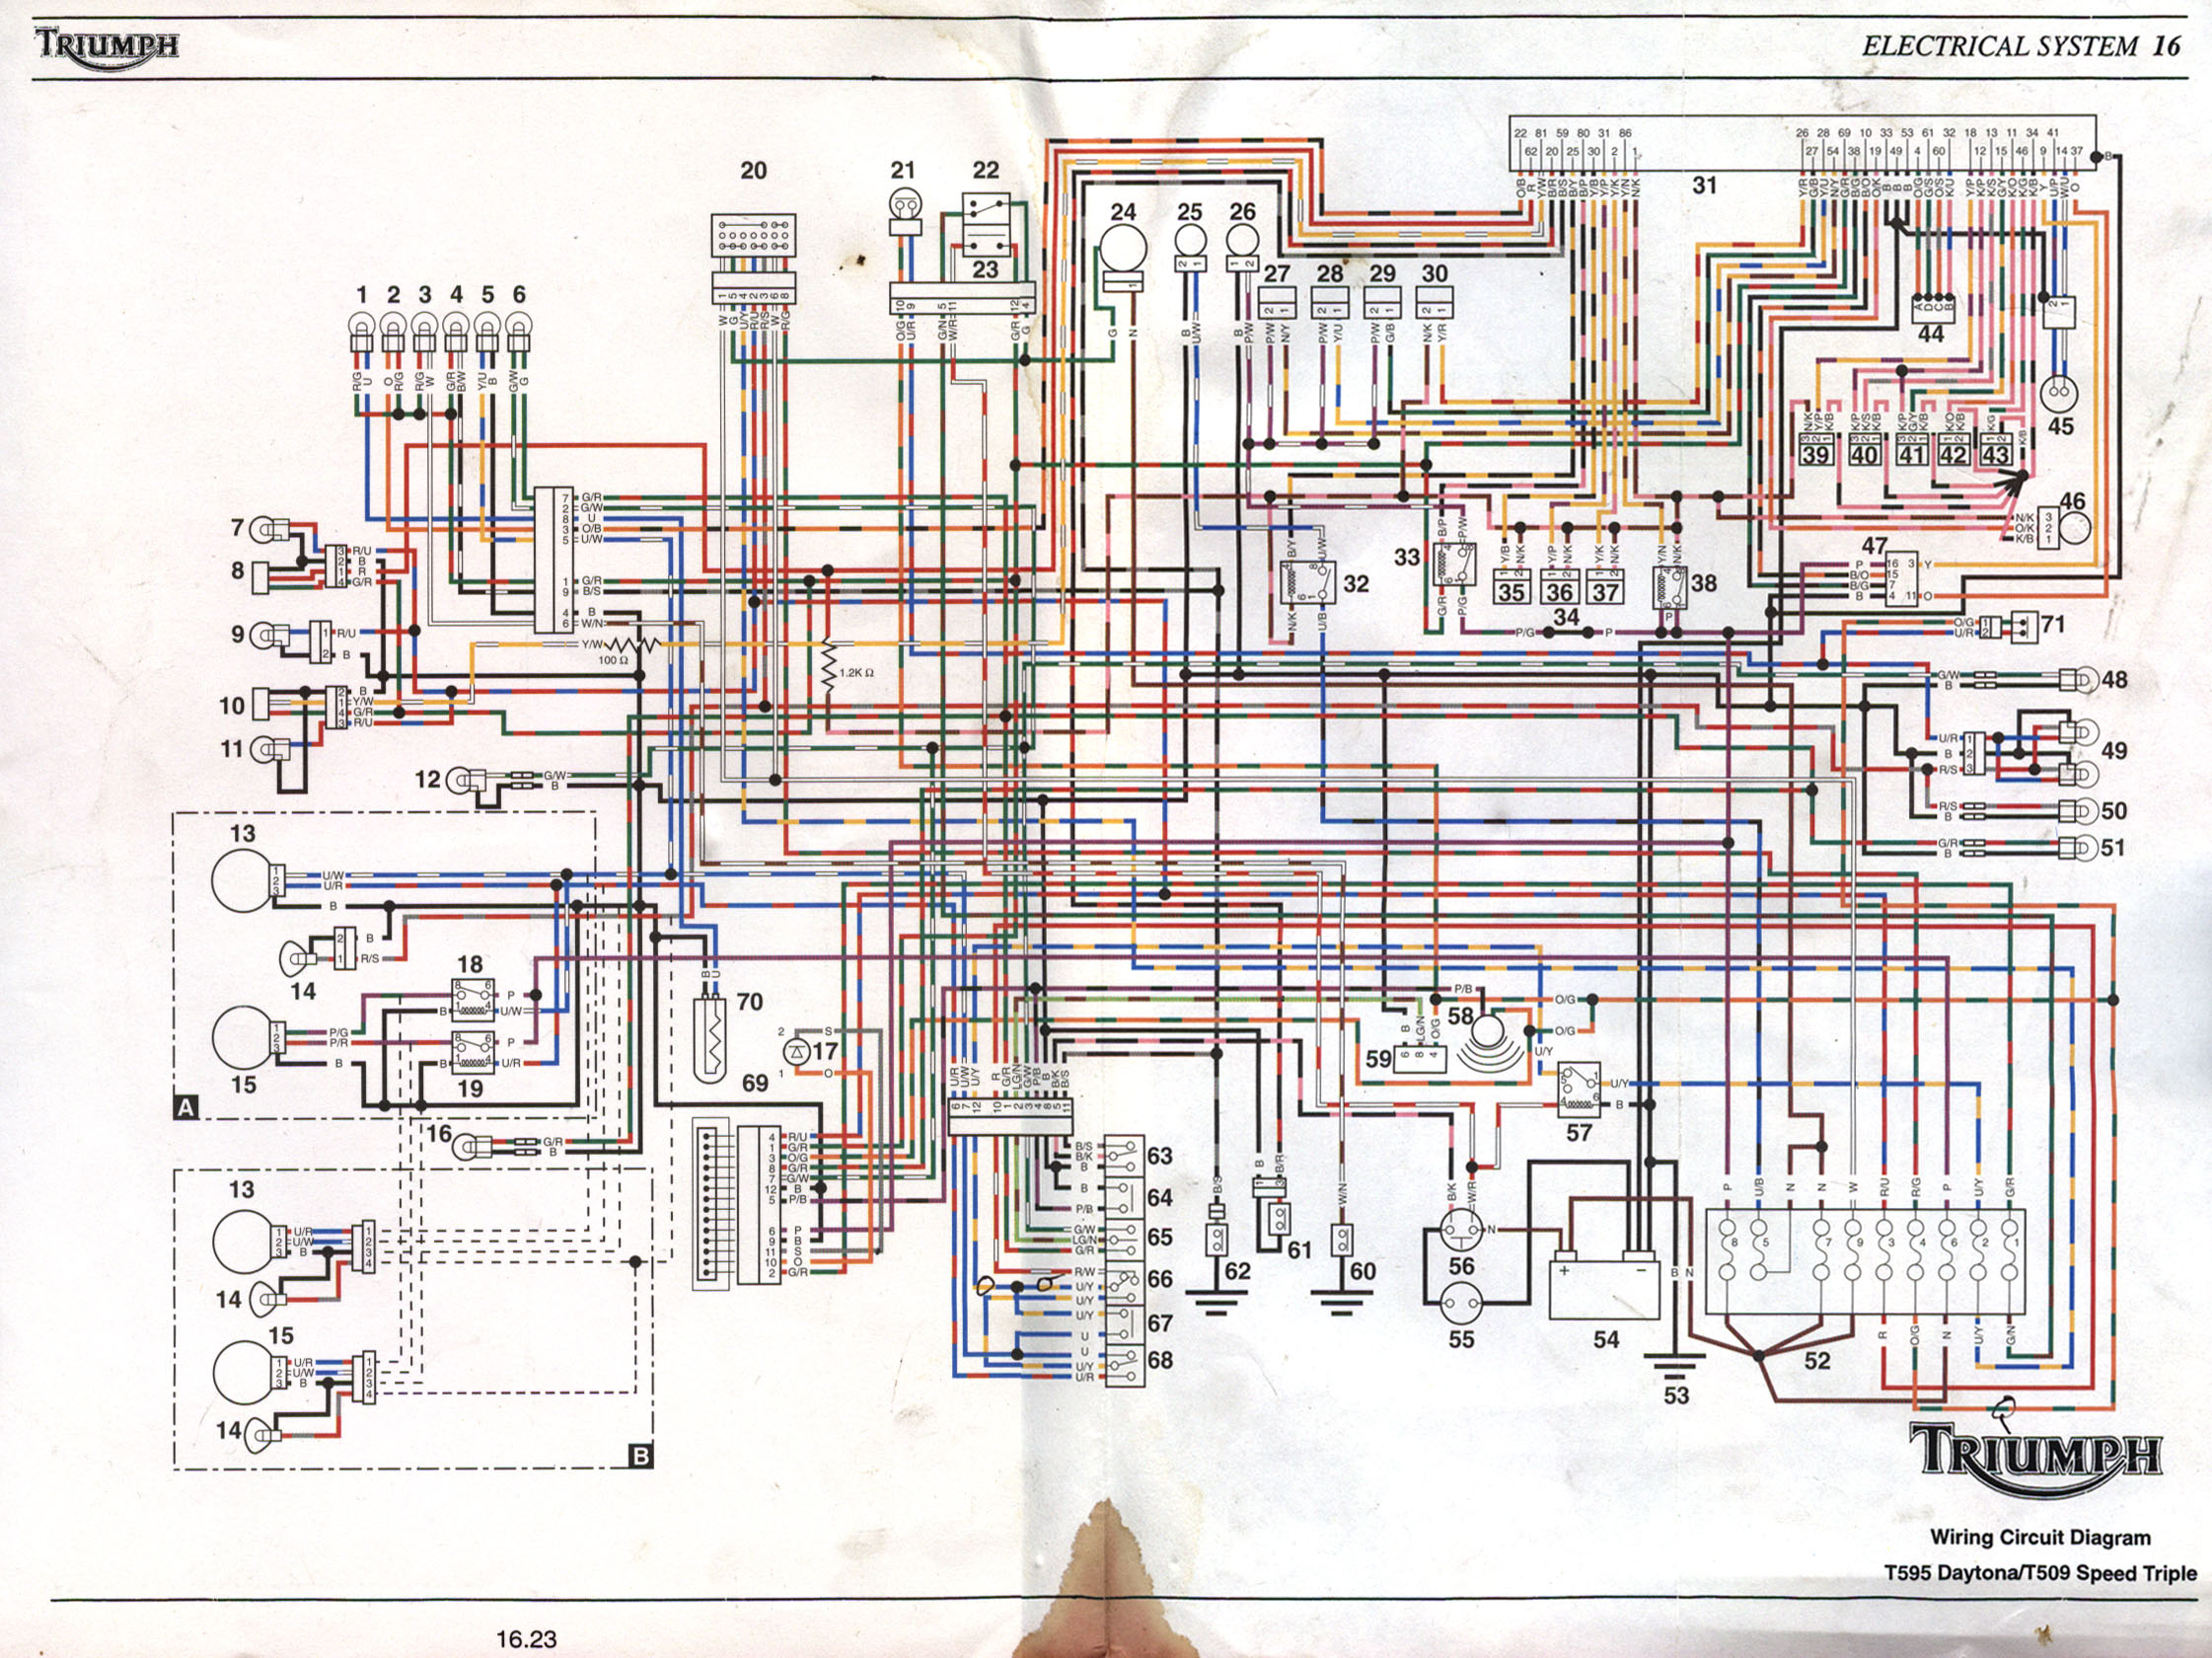 Amazing Fzr Wiring Diagram Picture Collection - Simple Wiring ...